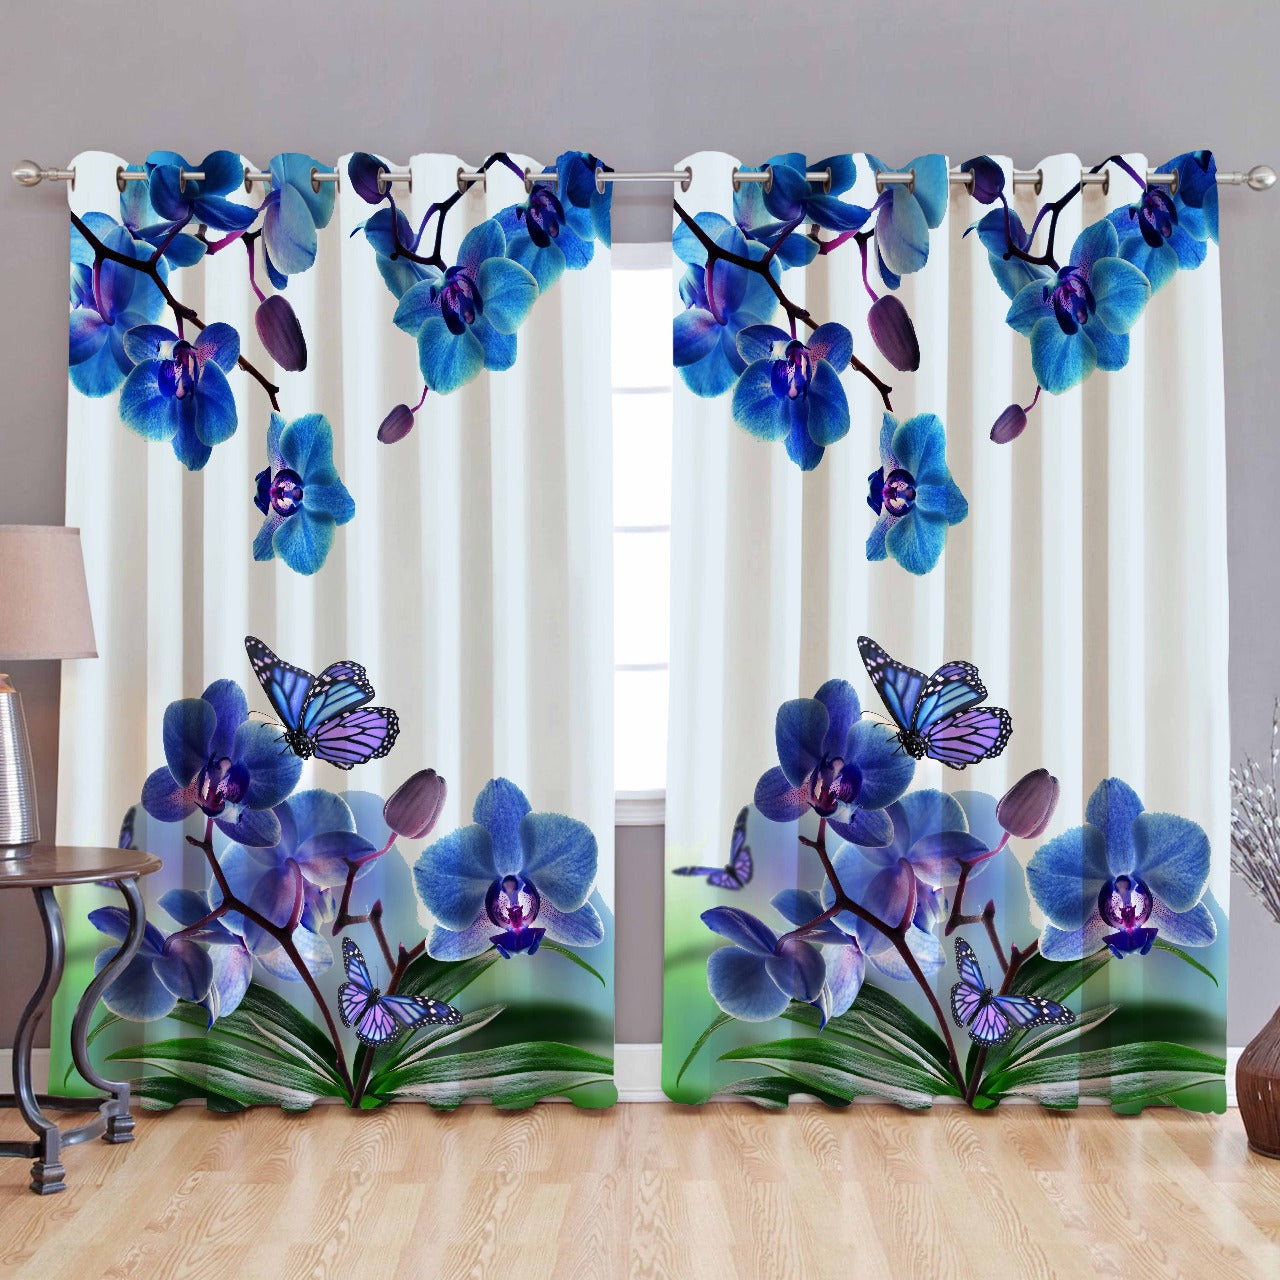 Digital Heavy Long Crush Curtains - Purple Consonance Butterfly & Flowers